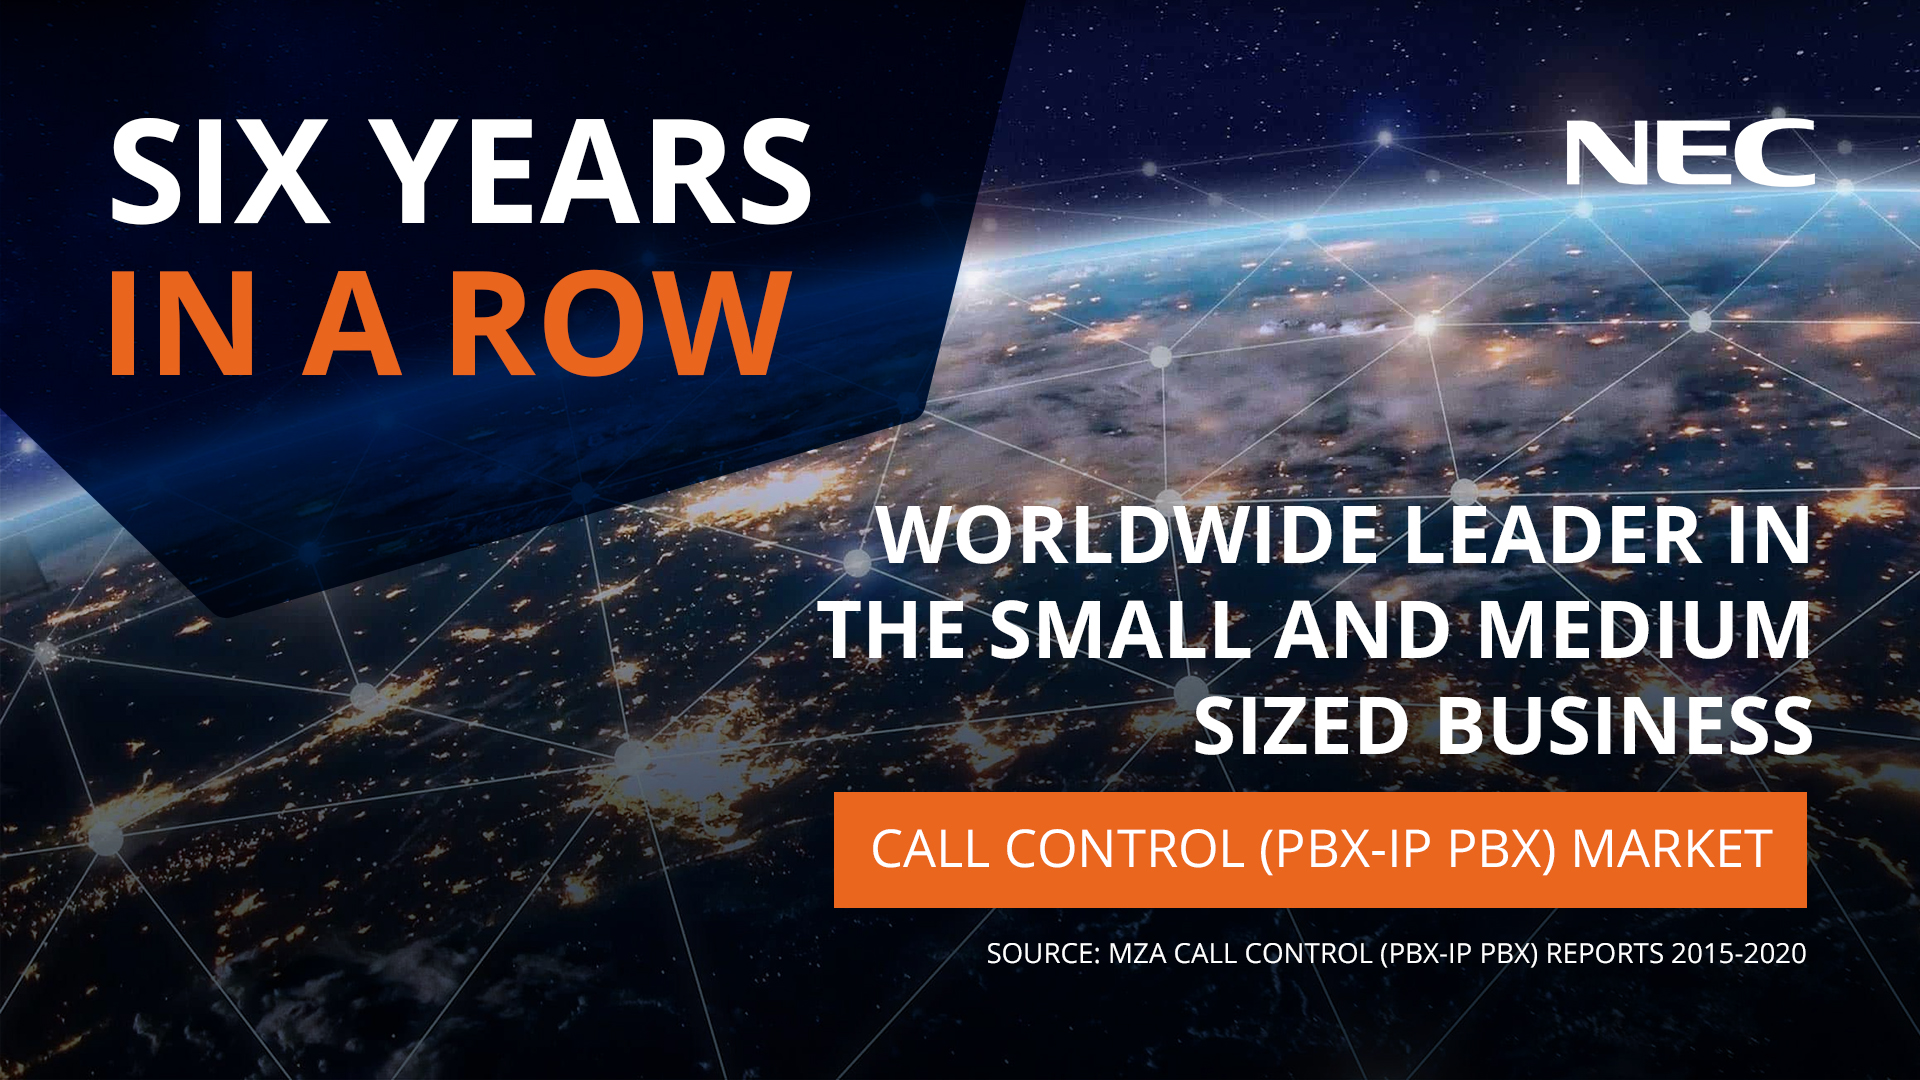 NEC Recognized As No.1 Worldwide Leader In The SMB Call Control Market